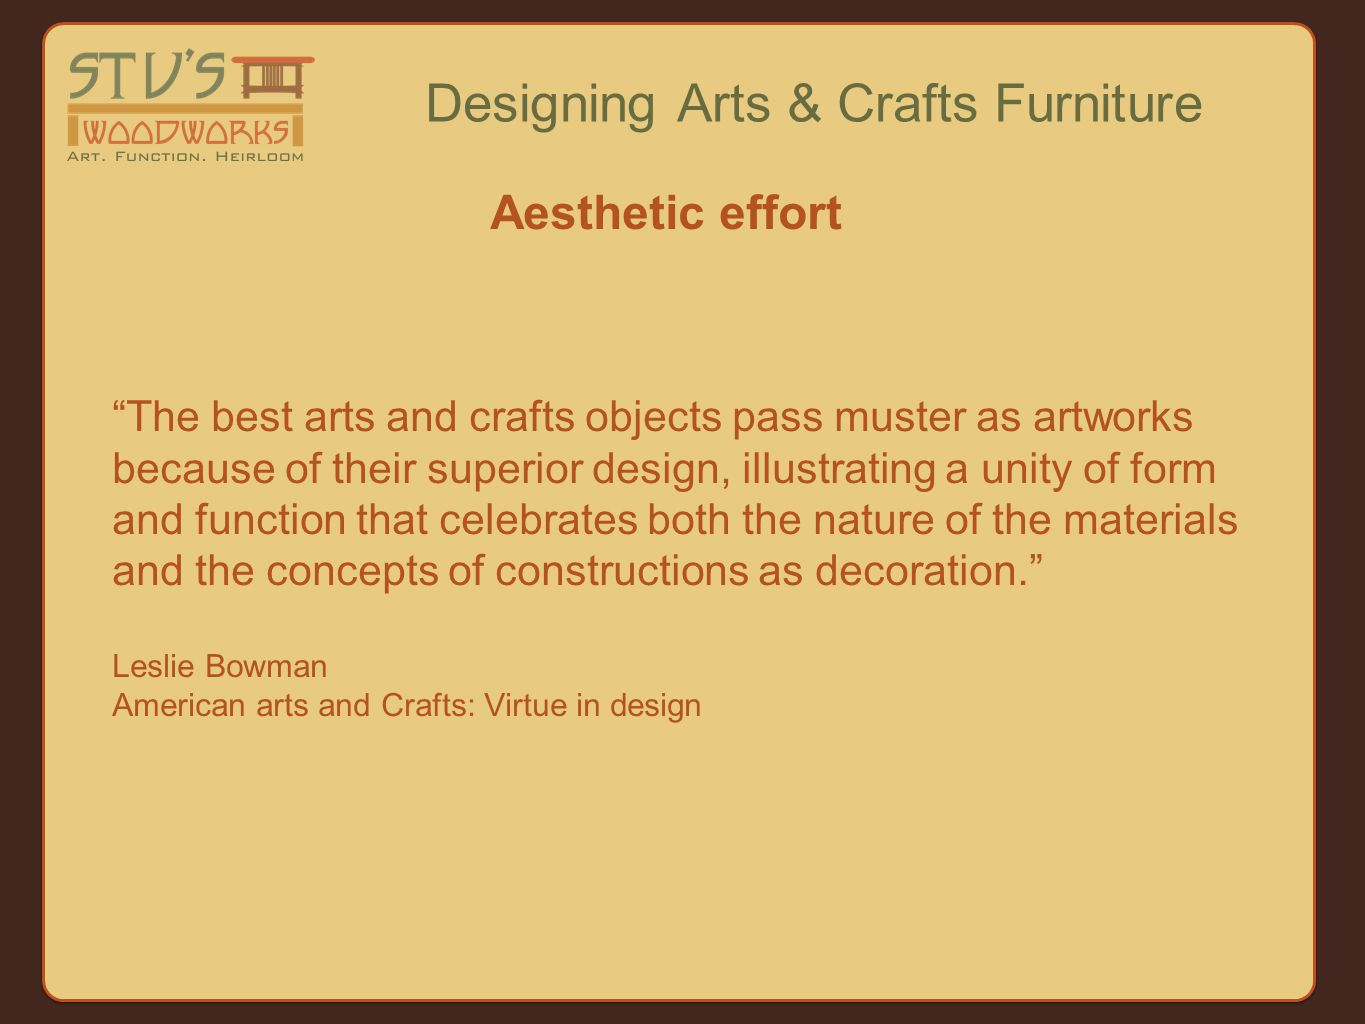 The best arts and crafts objects pass muster as artworks because of their superior design, illustrating a unity of form and function that celebrates both the nature of the materials and the concepts of constructions as decoration. Leslie Bowman American arts and Crafts: Virtue in design Designing Arts & Crafts Furniture Aesthetic effort